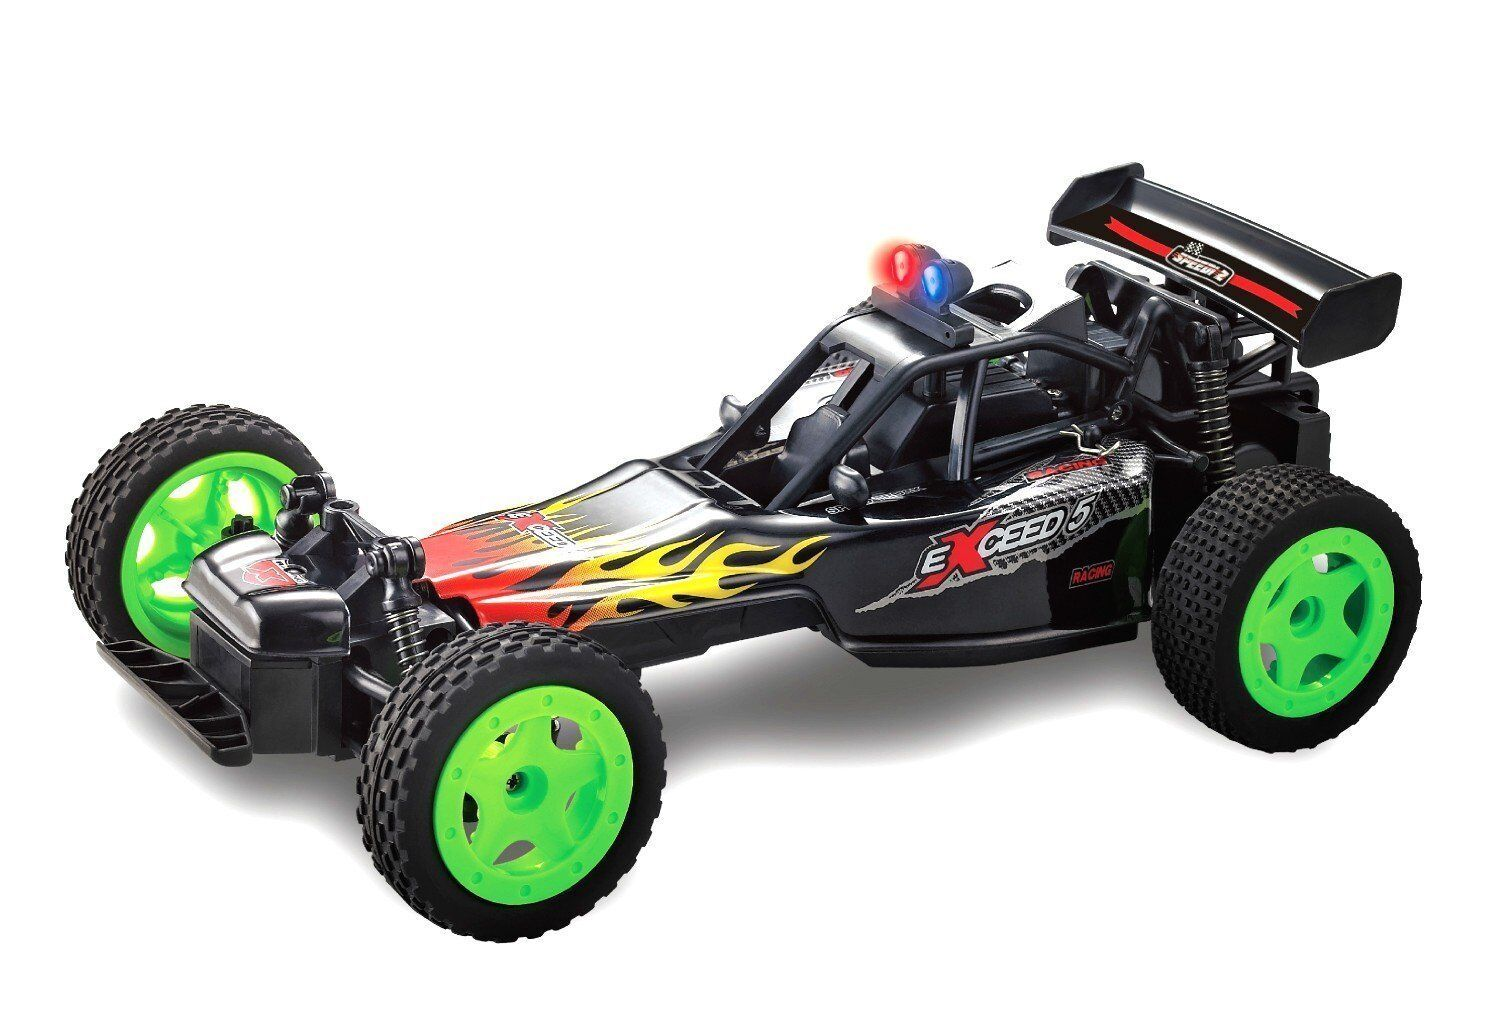 BRAND NEW Ultra Fast Remote Control Race Car, Stunts - EVERYTHING INCLUDED